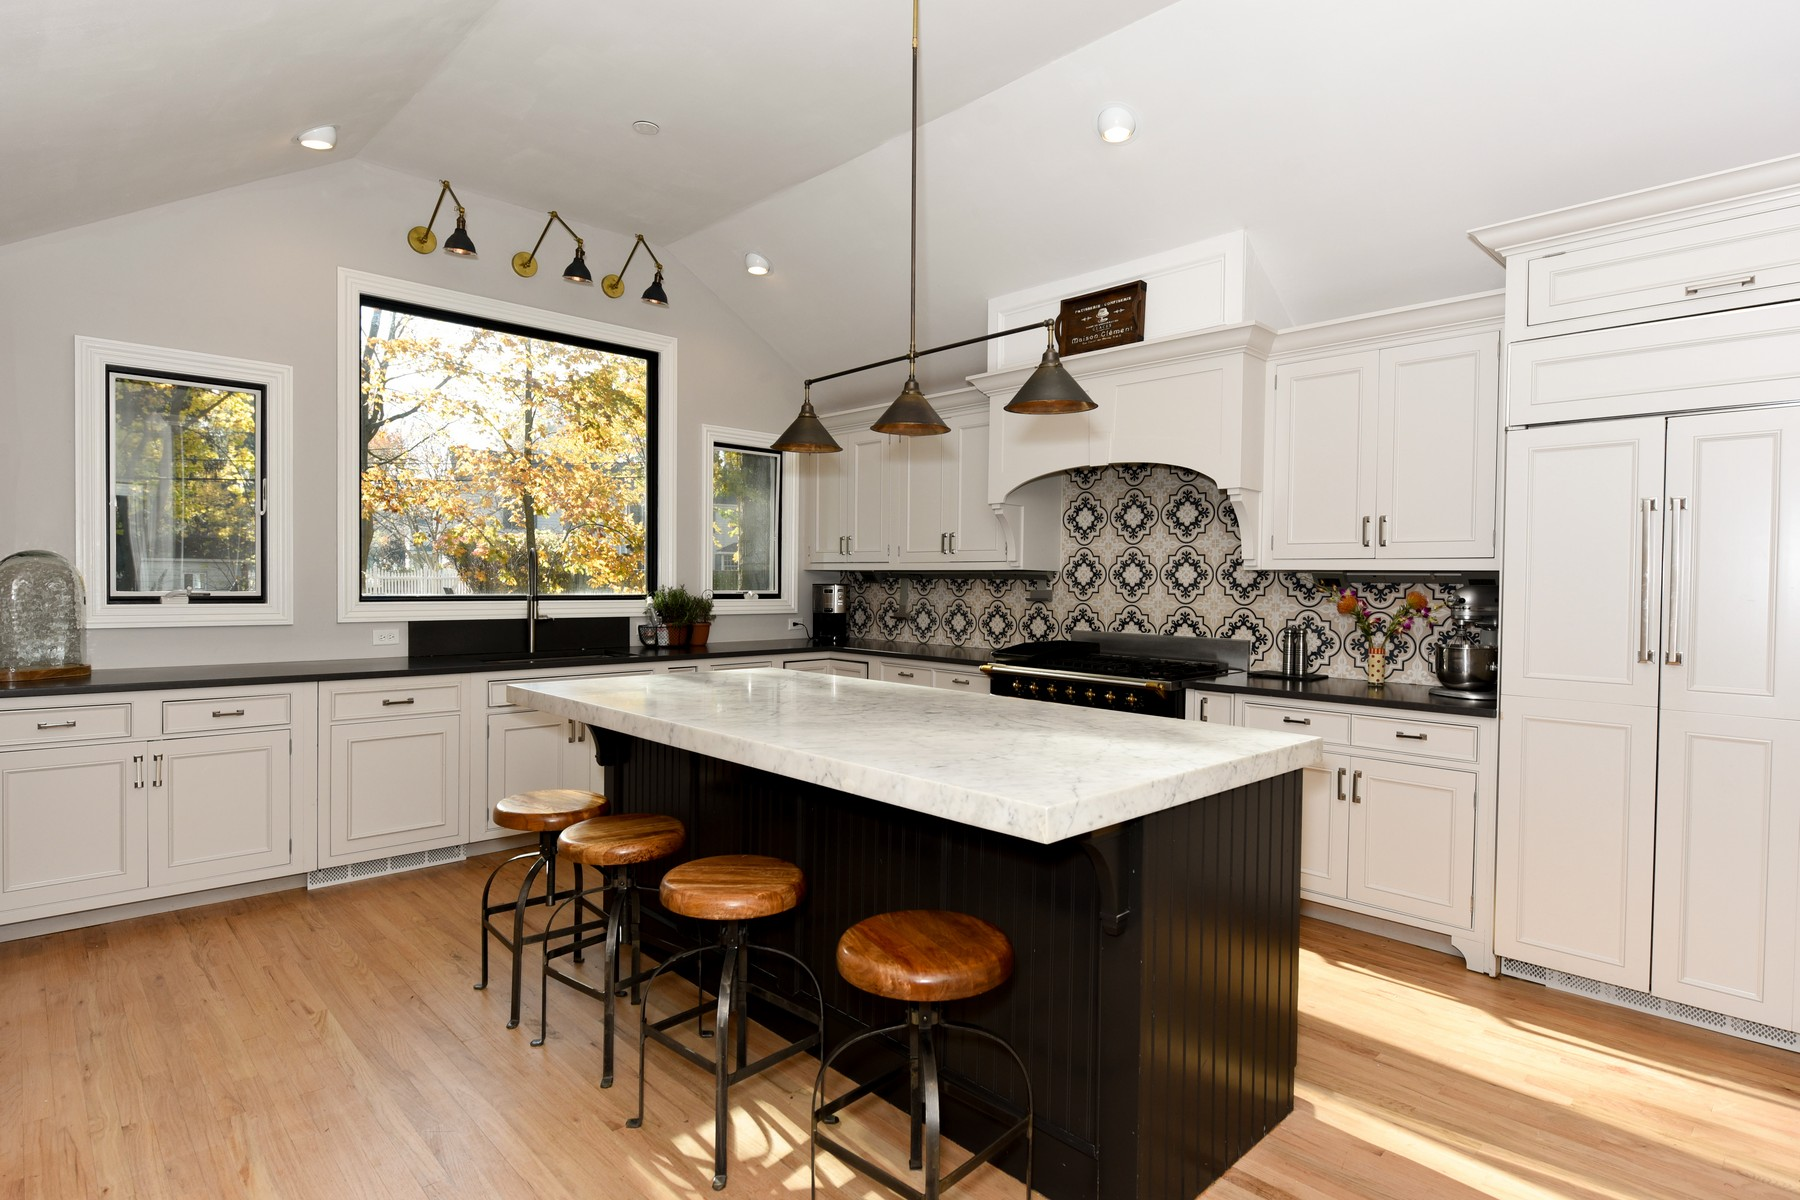 Single Family Home for Sale at Premier Rumson Location 9 Robin Rd Rumson, New Jersey 07760 United States